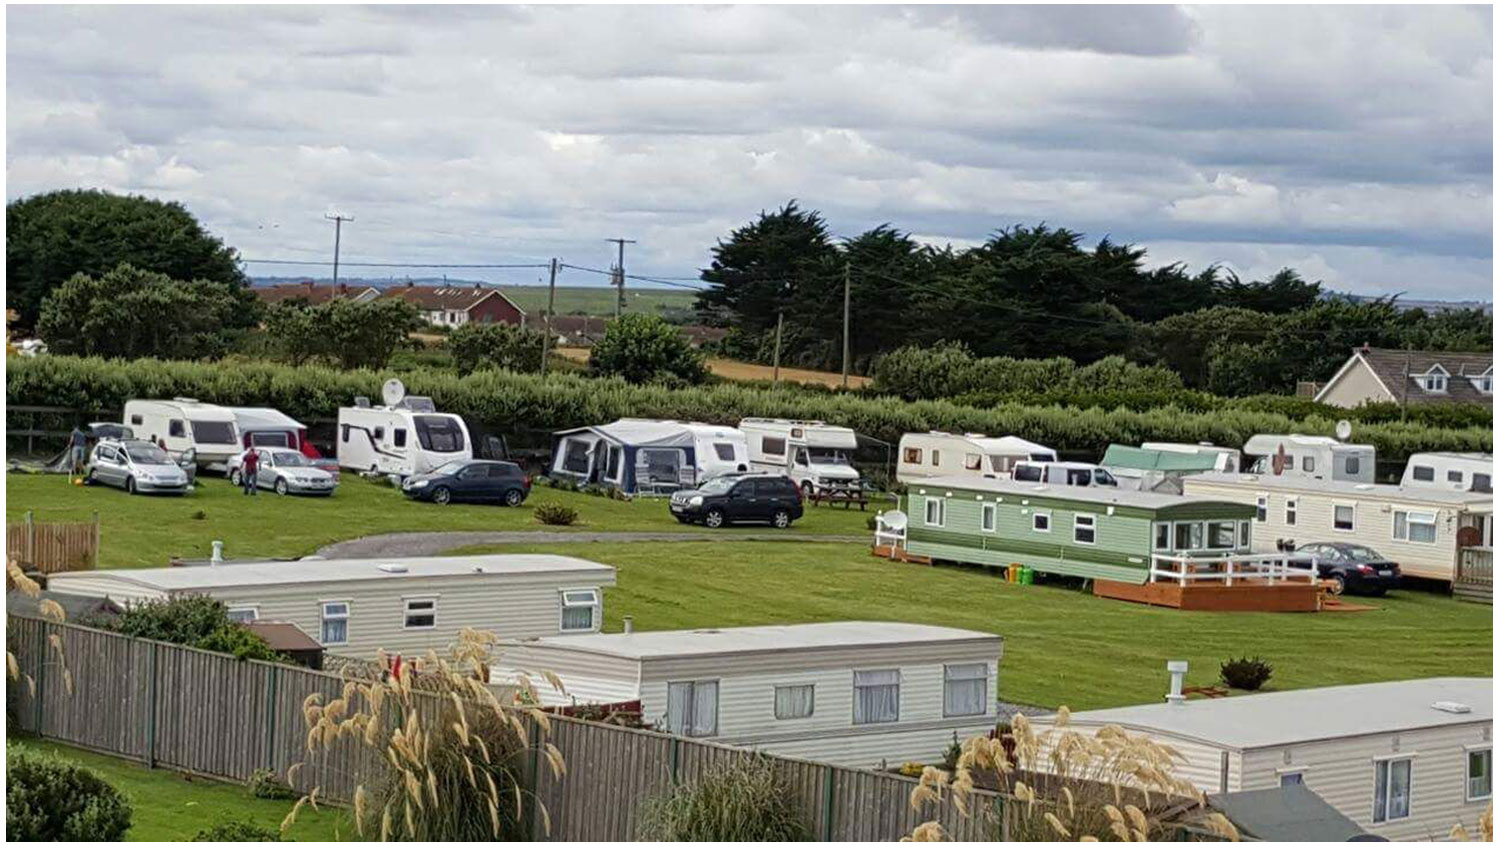 Aerial-View-Lynders-Mobile-Home-Park-Portrane-Donabate-North-County-Dublin-Fingal